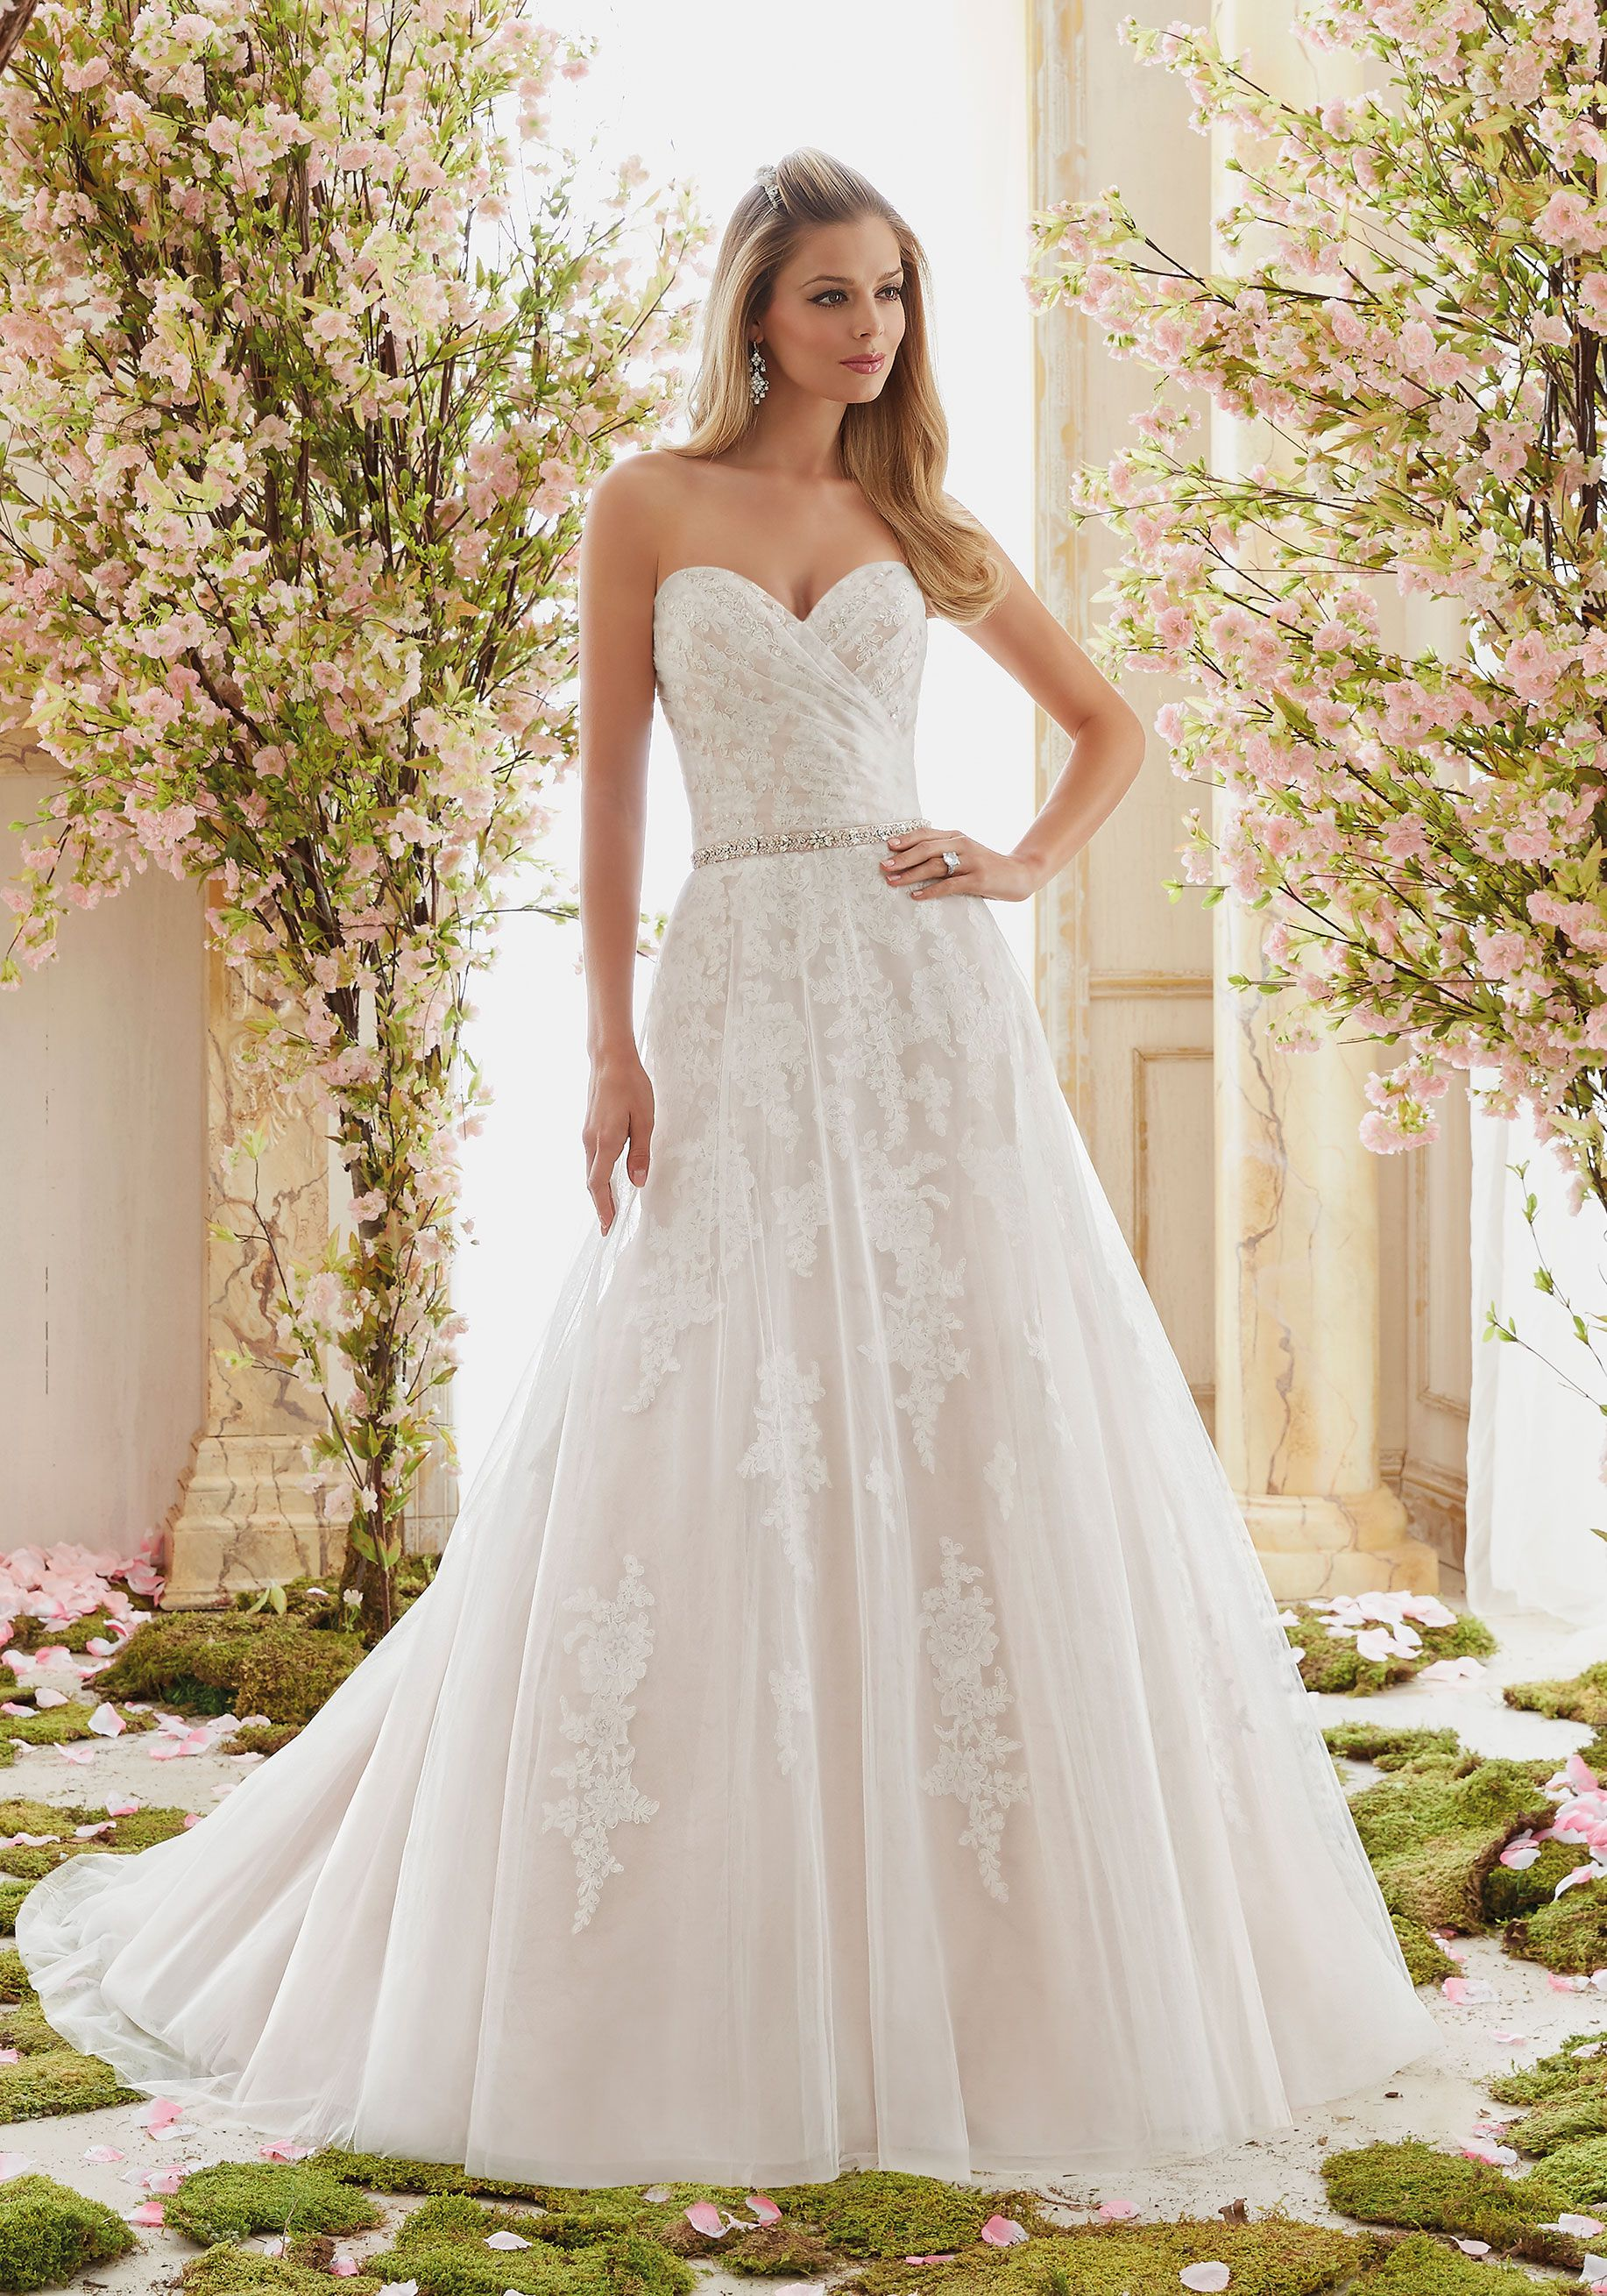 Lace dress styles for wedding  Pin by Mariée Casa de Novias on Vestidos Mariée Casa de Novias